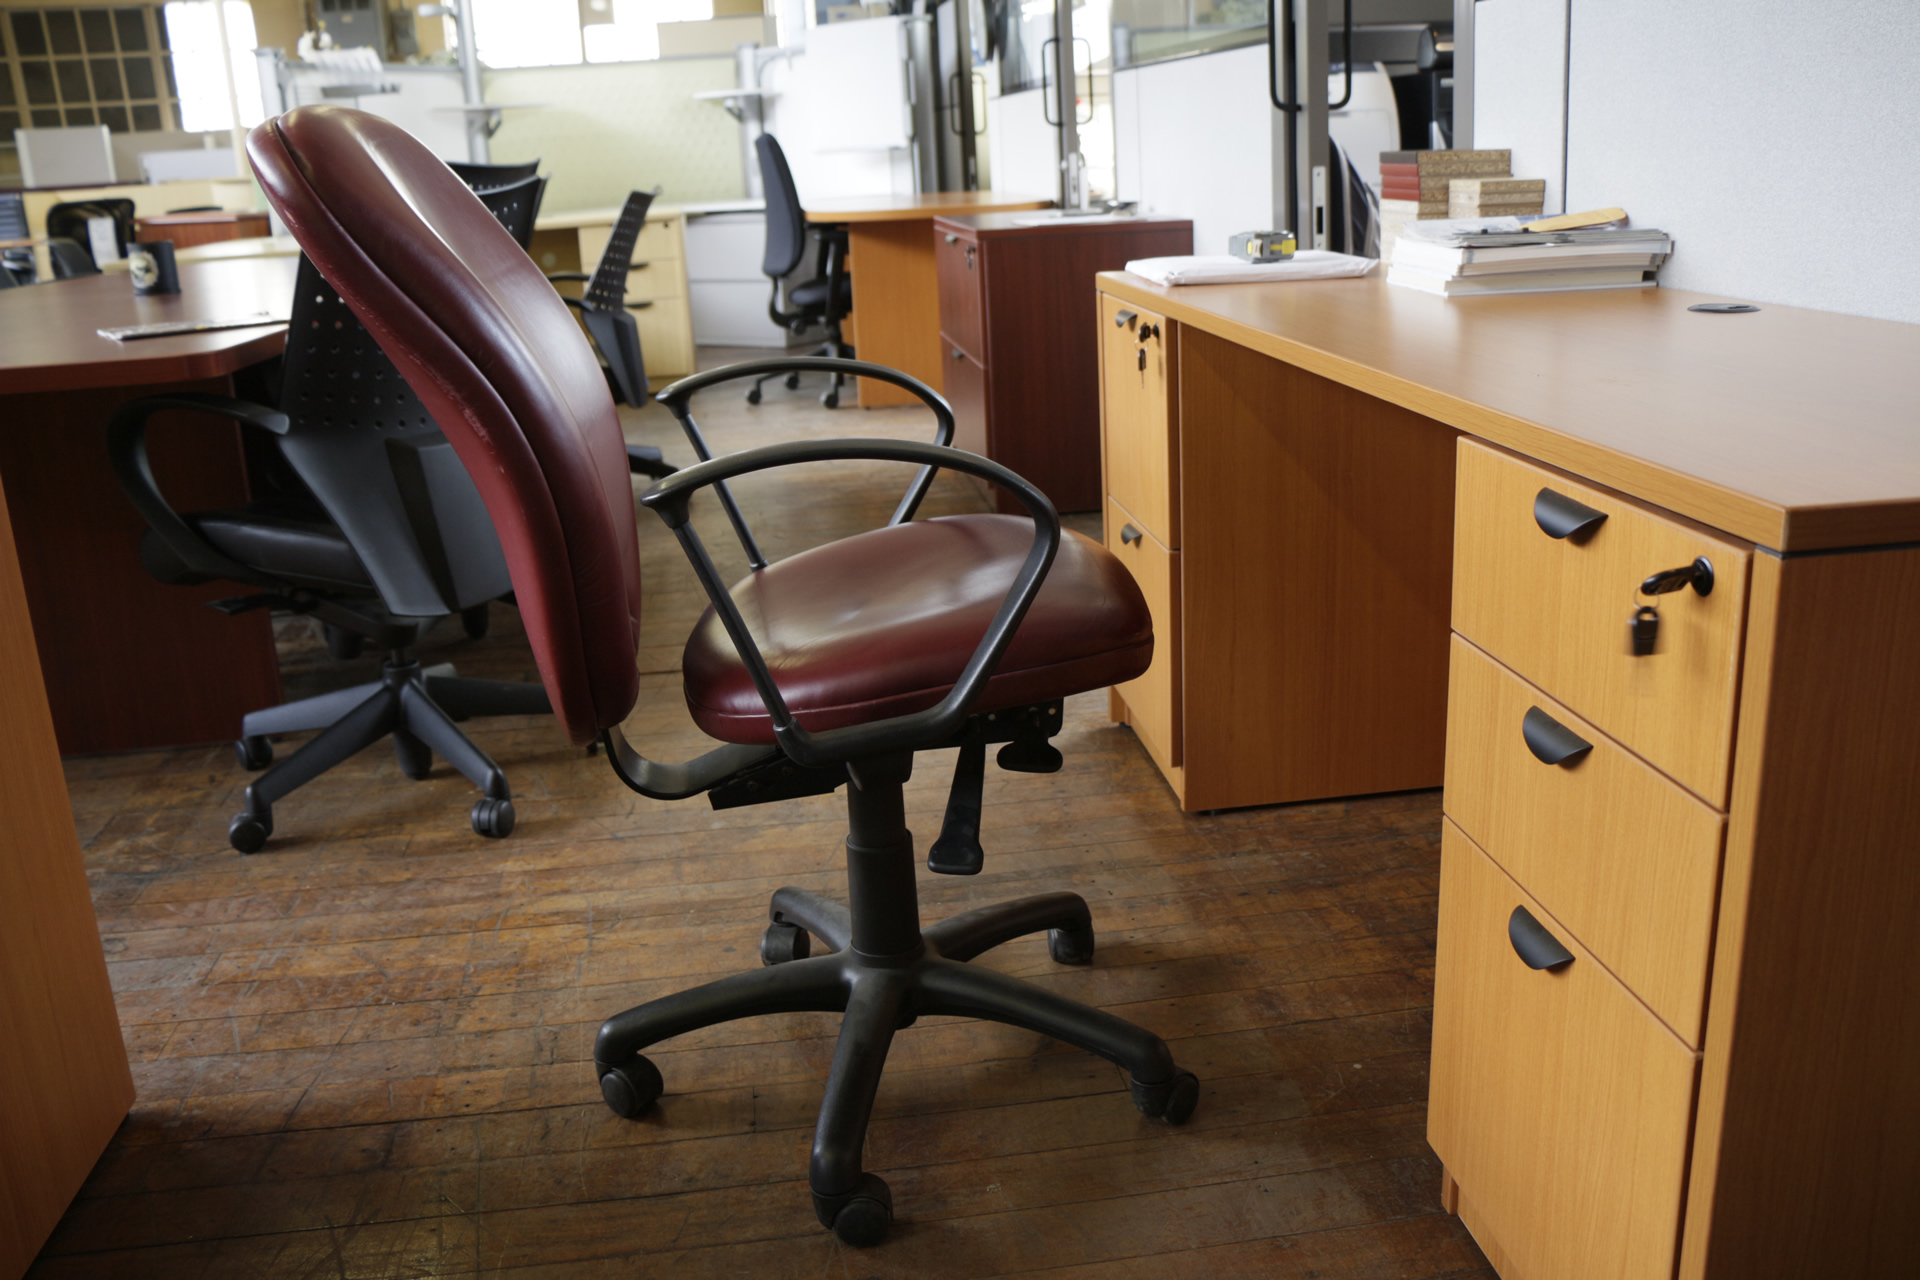 peartreeofficefurniture_peartreeofficefurniture_mg_3288.jpg